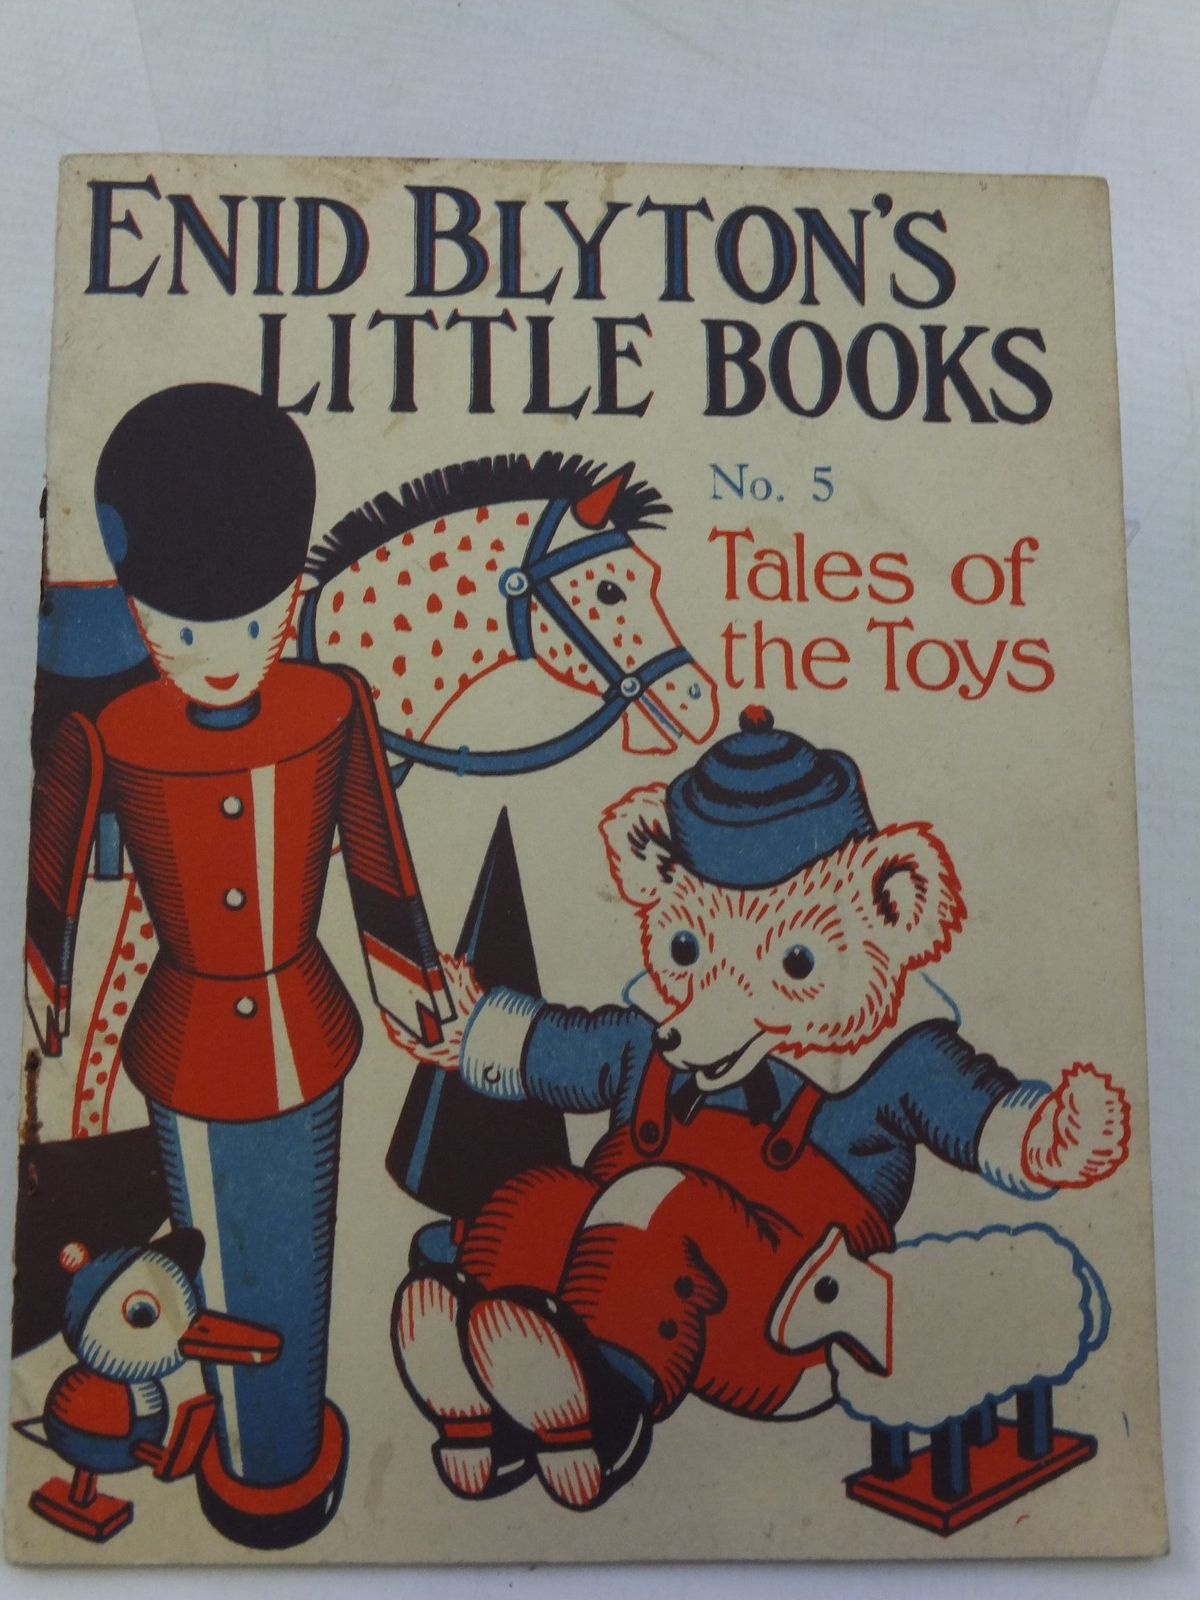 Photo of ENID BLYTON'S LITTLE BOOKS NO. 5 - TALES OF THE TOYS written by Blyton, Enid illustrated by Kerr, Alfred E. published by Evans Brothers Limited (STOCK CODE: 1708192)  for sale by Stella & Rose's Books